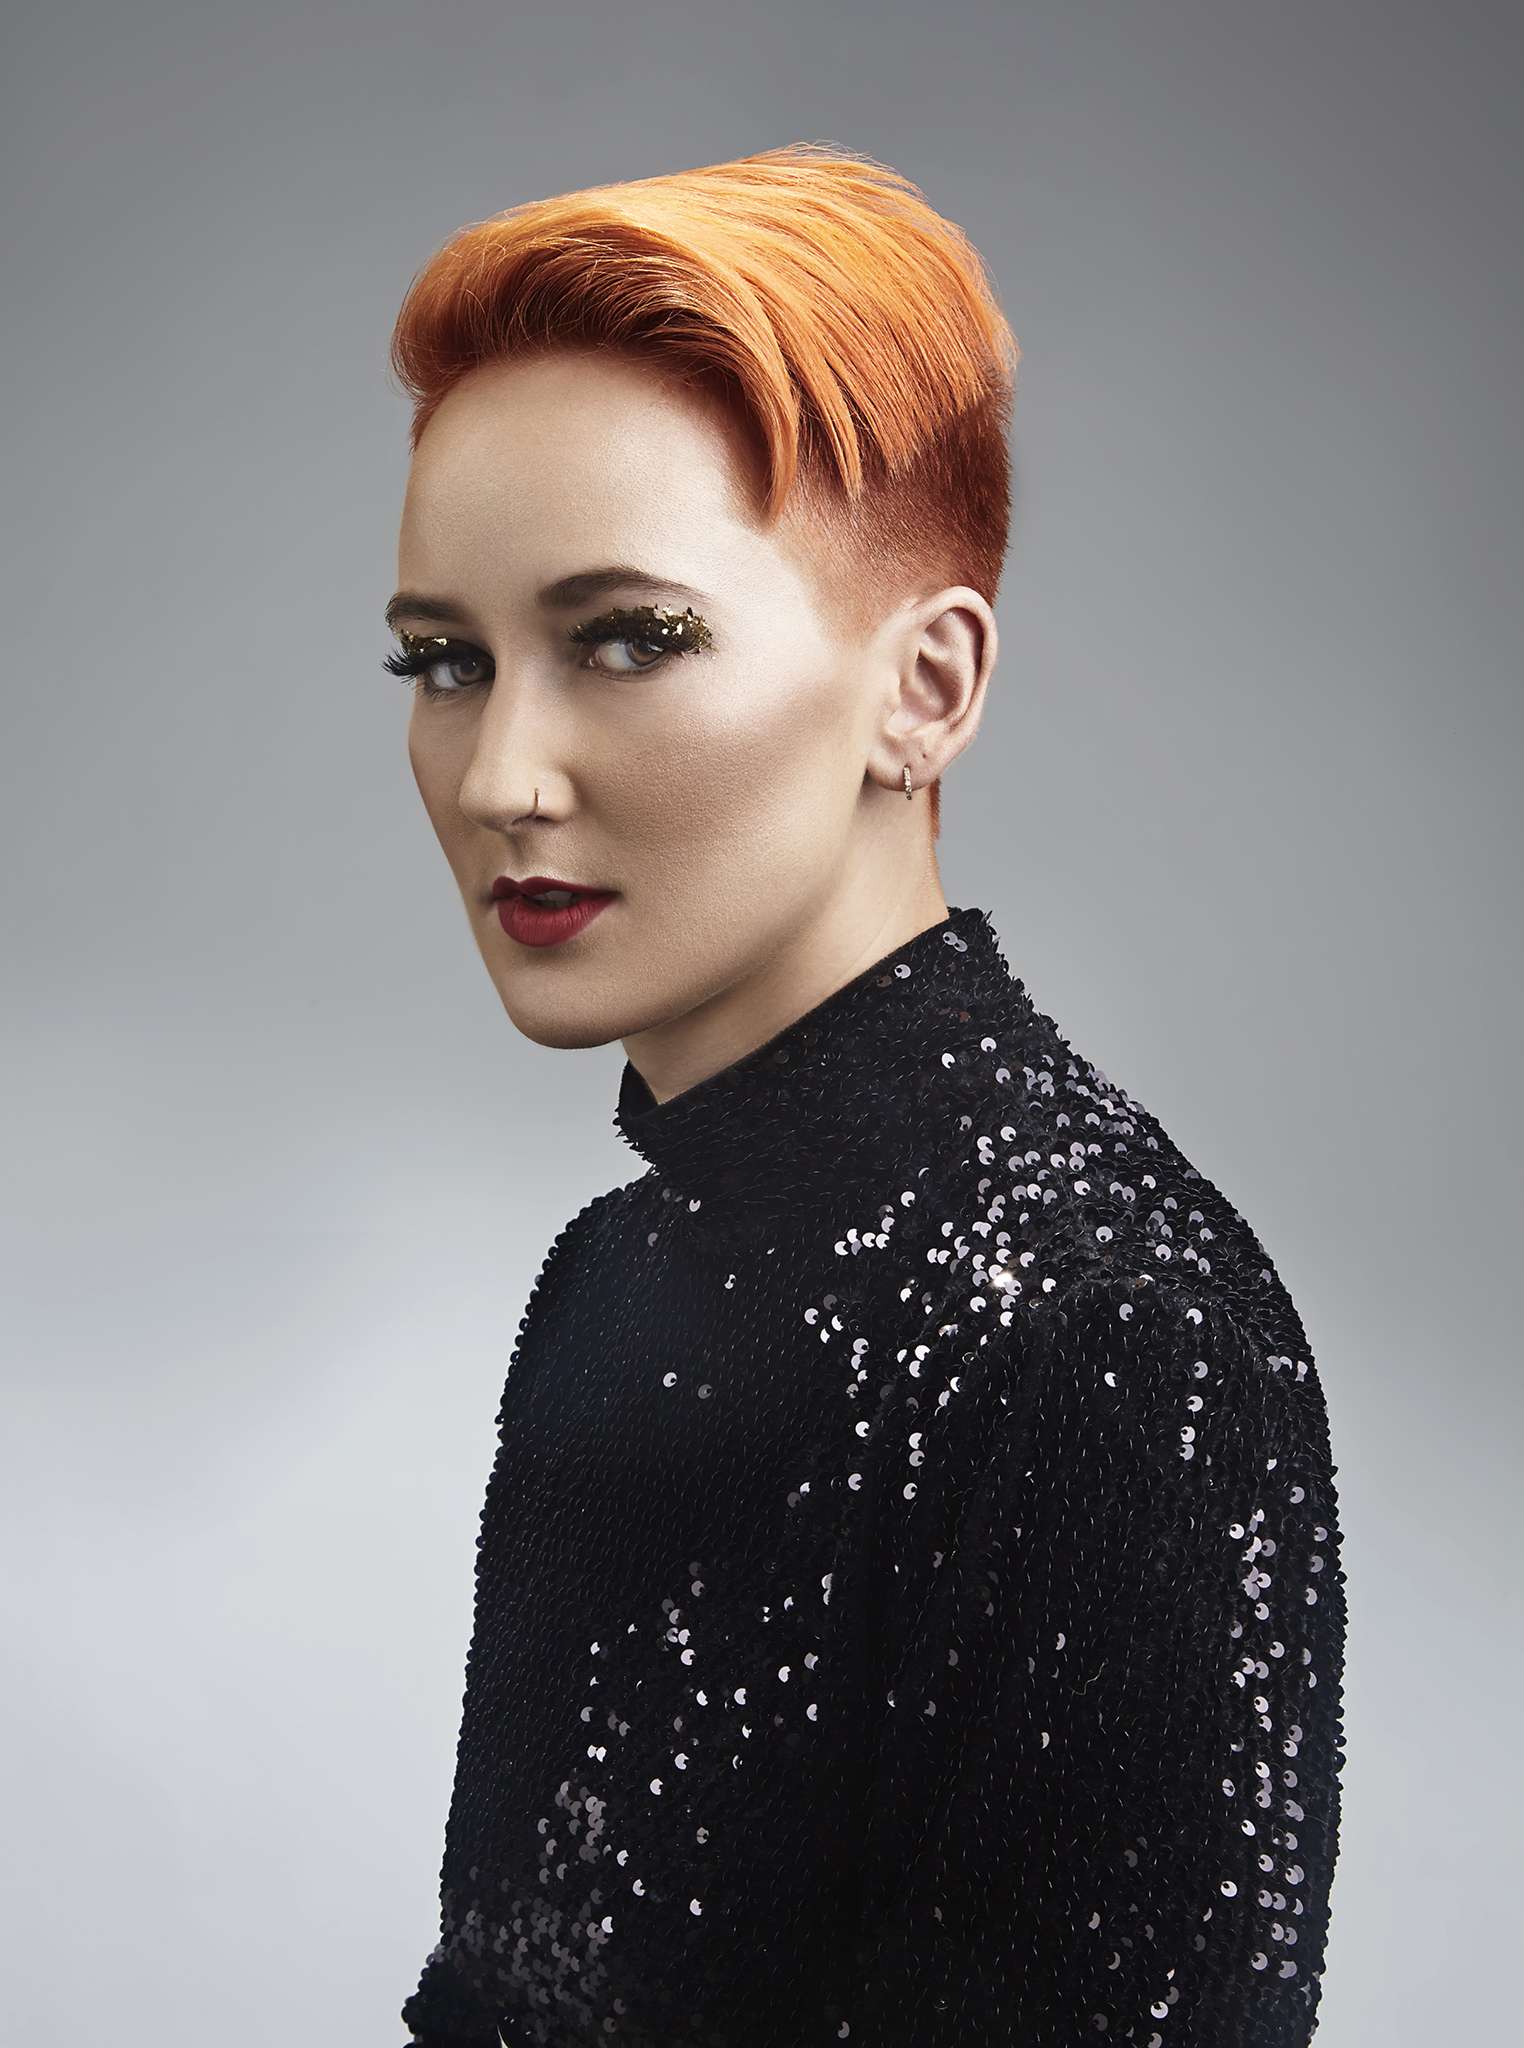 Fall-Hair-Collection-Shoot-for-Studio-Alf-Frisør-by-Dana-cole-red-hair-red-lipstick-black-blouse-hair-styling-advertising.jpg